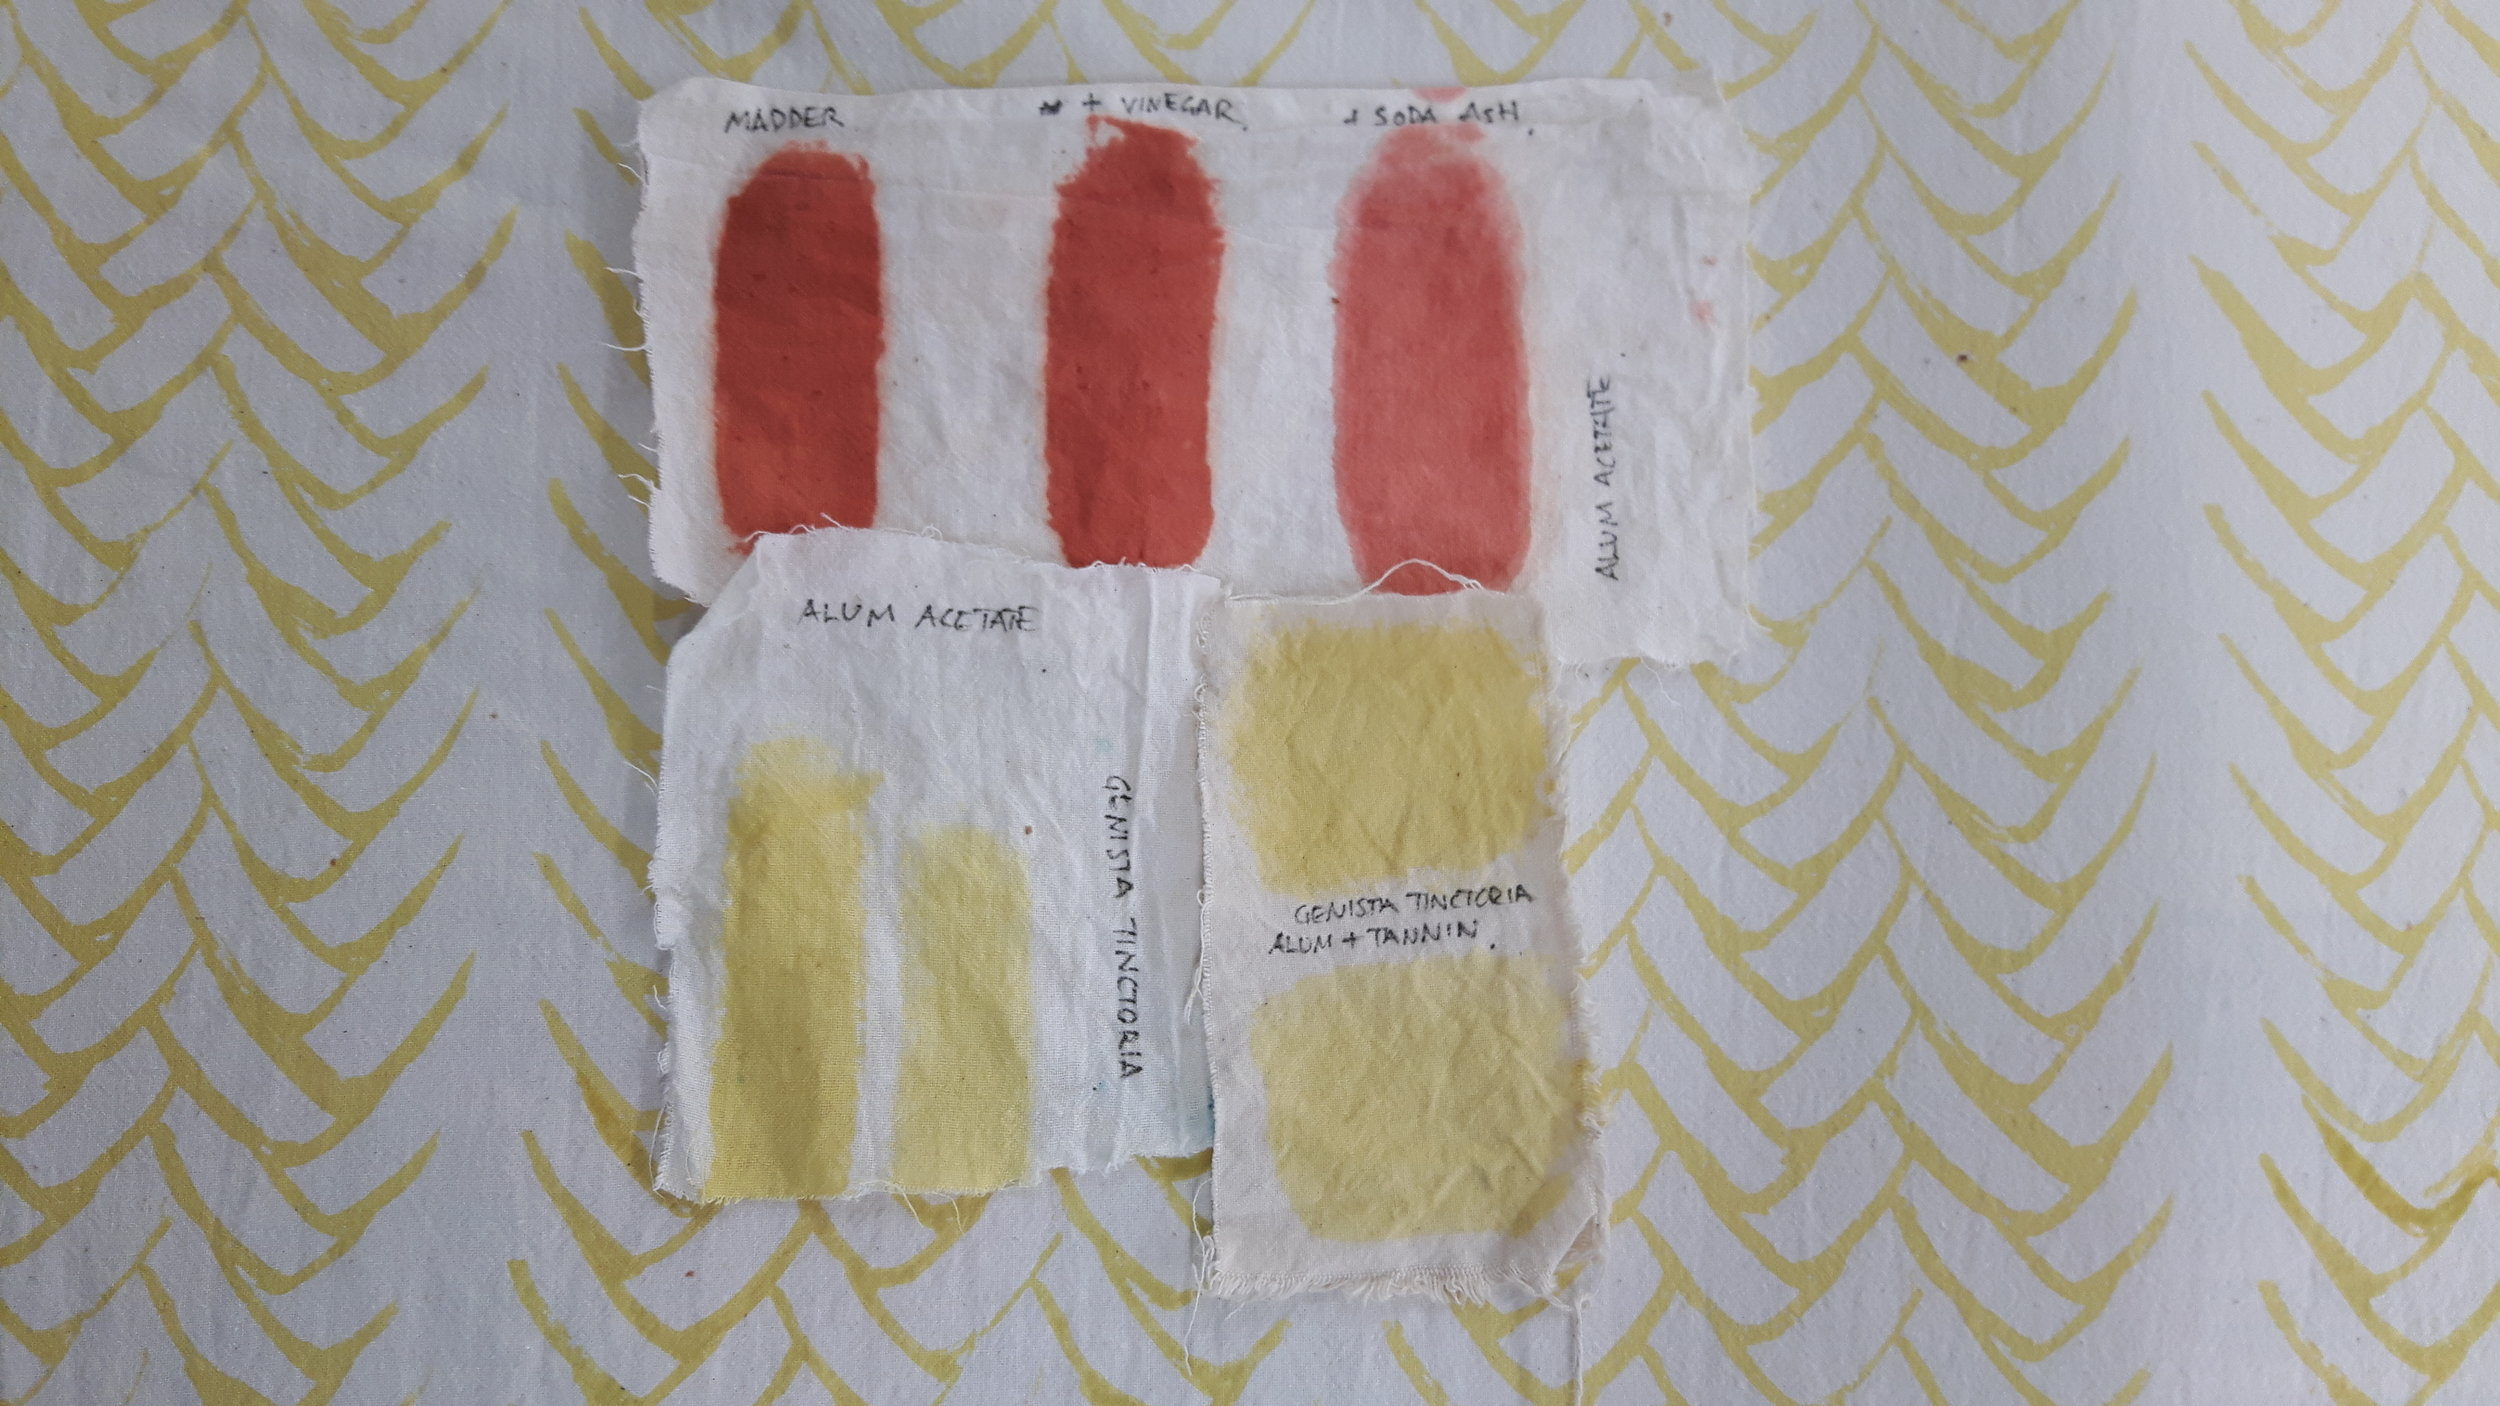 Testing mordant printing with madder and dyer's broom